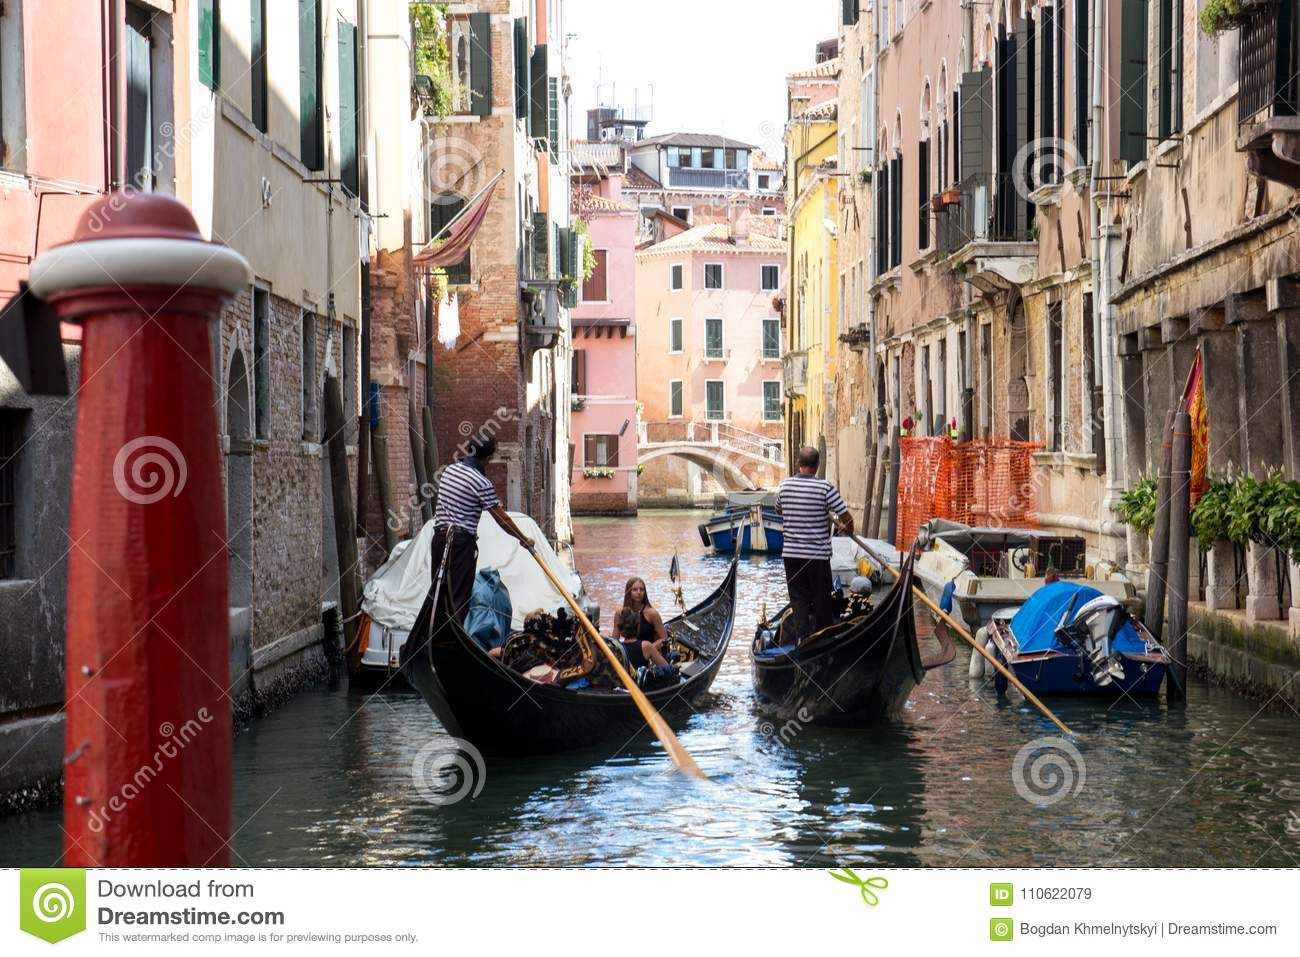 ITALY, VENICE, 18,09,2017, Two gondolas with people sail through